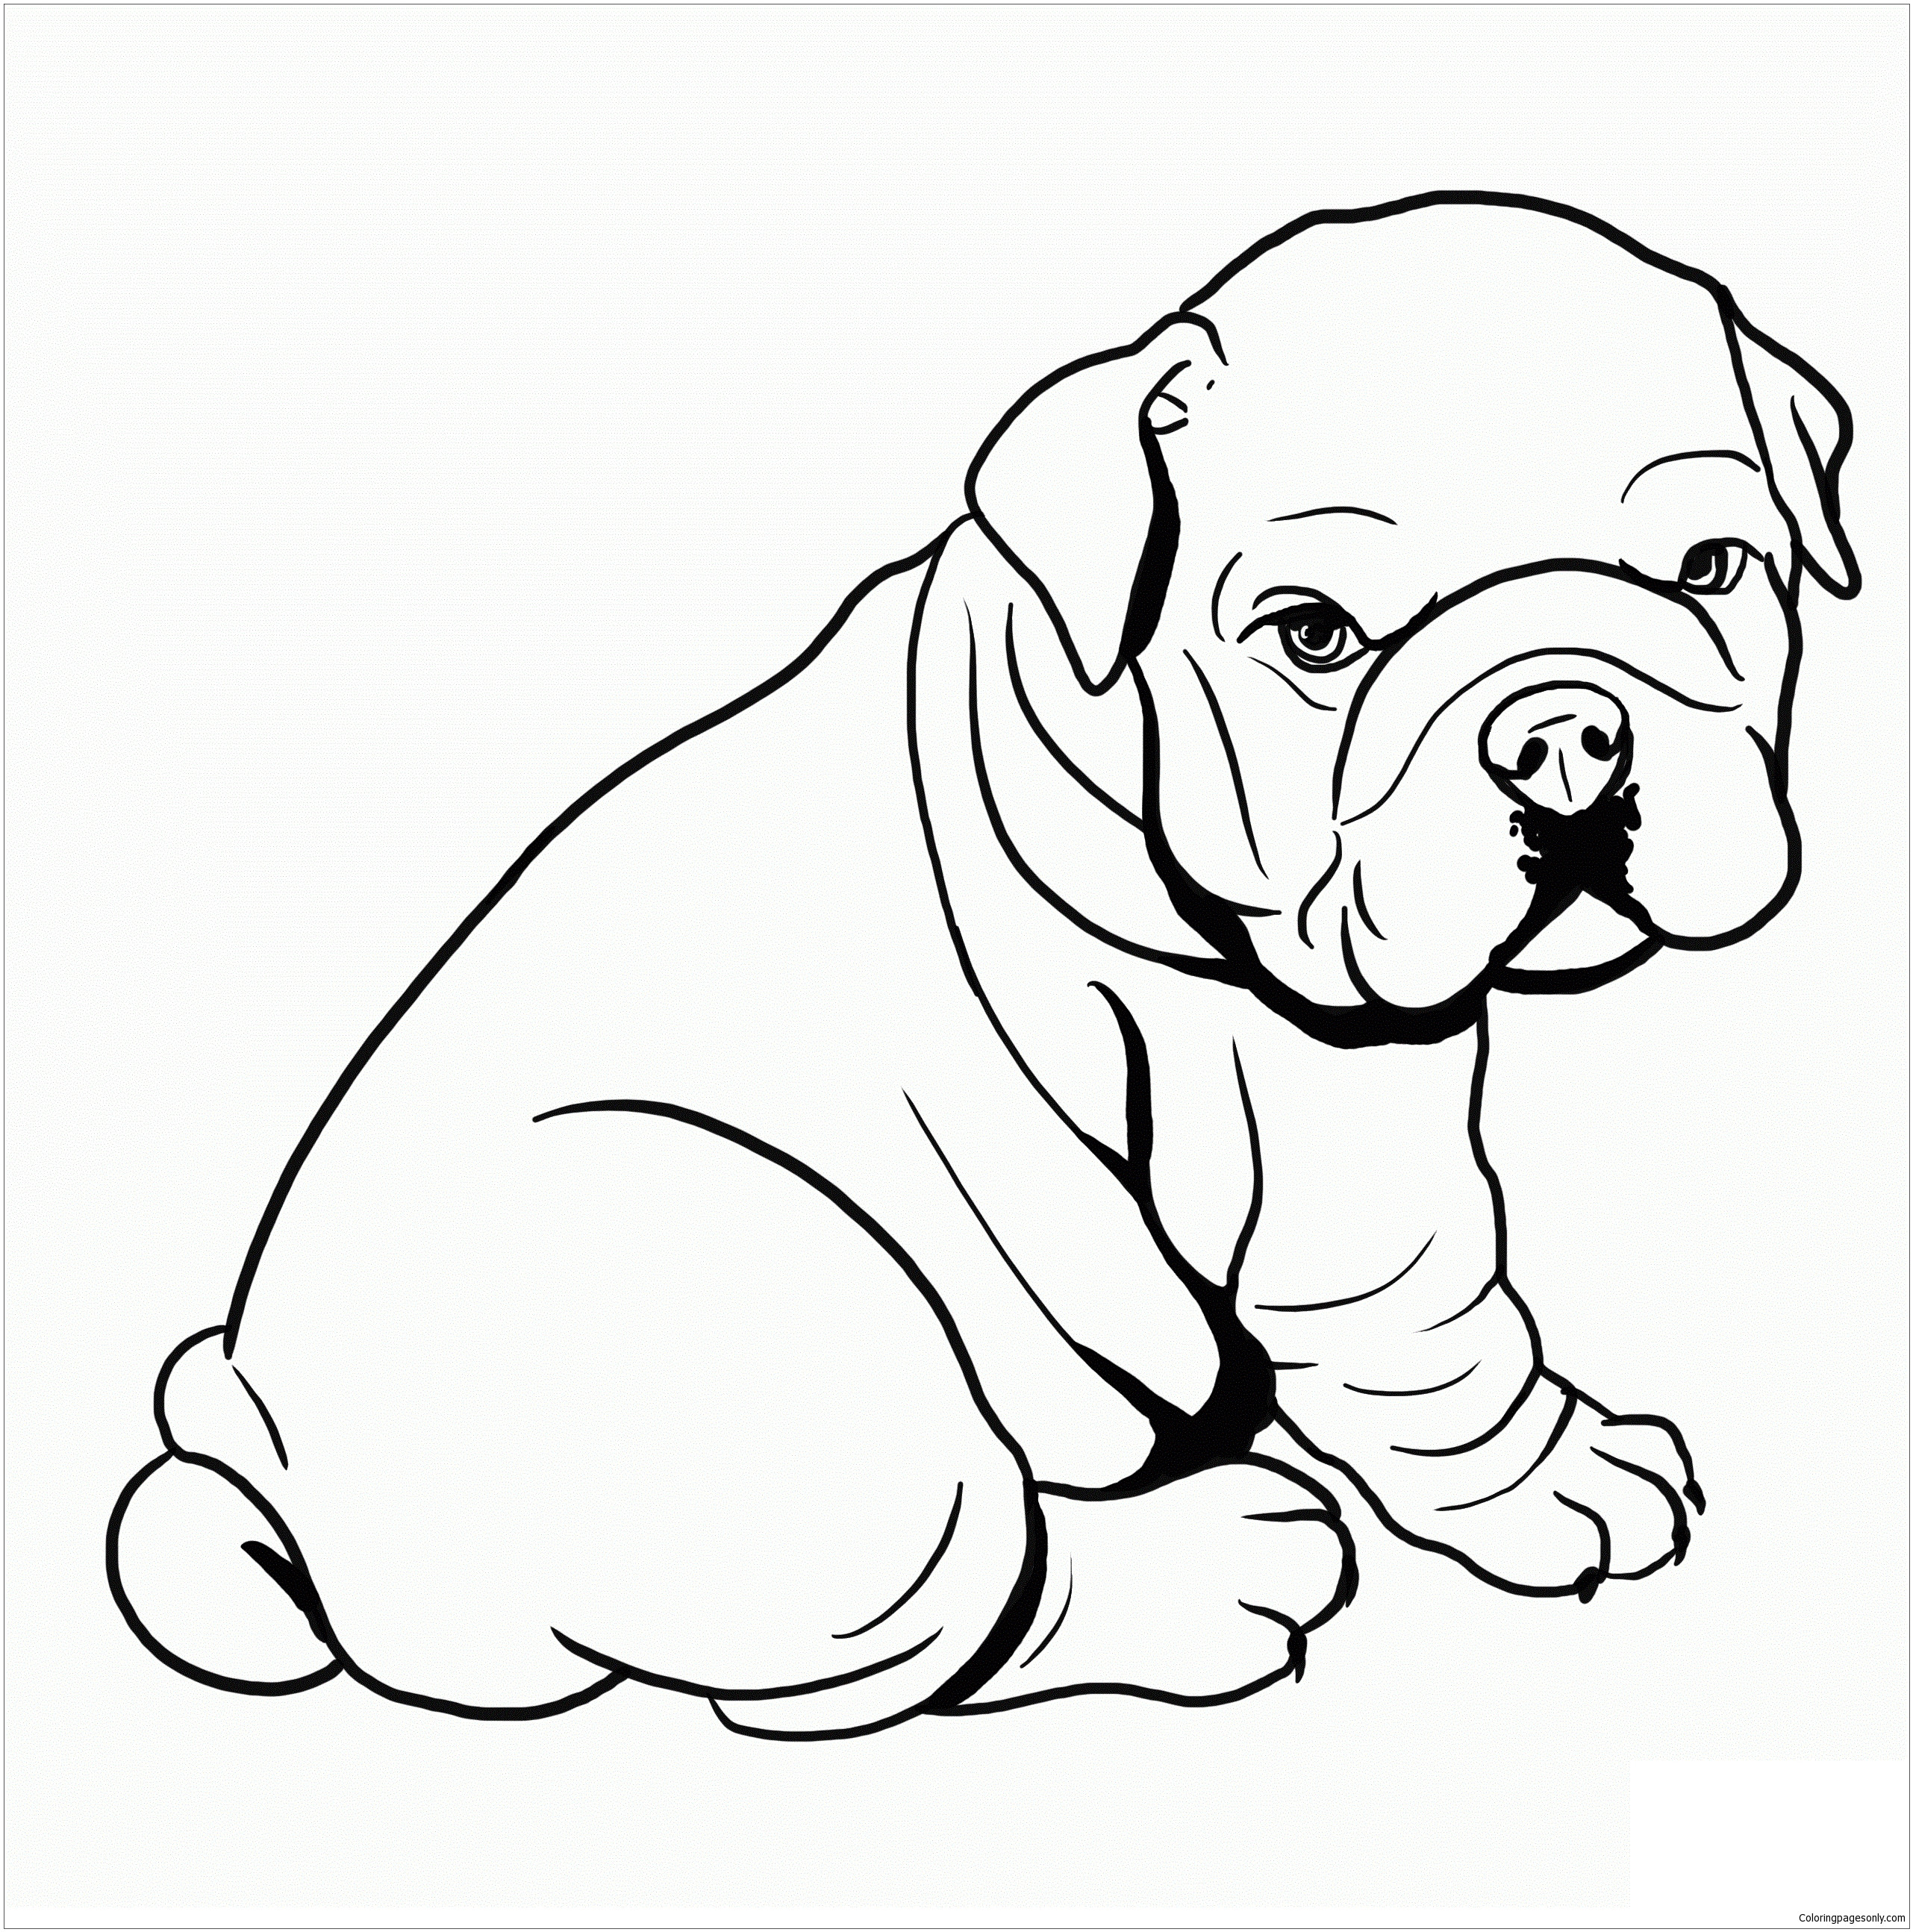 Pit Bull Coloring Book  Cute Baby Pitbull Coloring Page Free Coloring Pages line